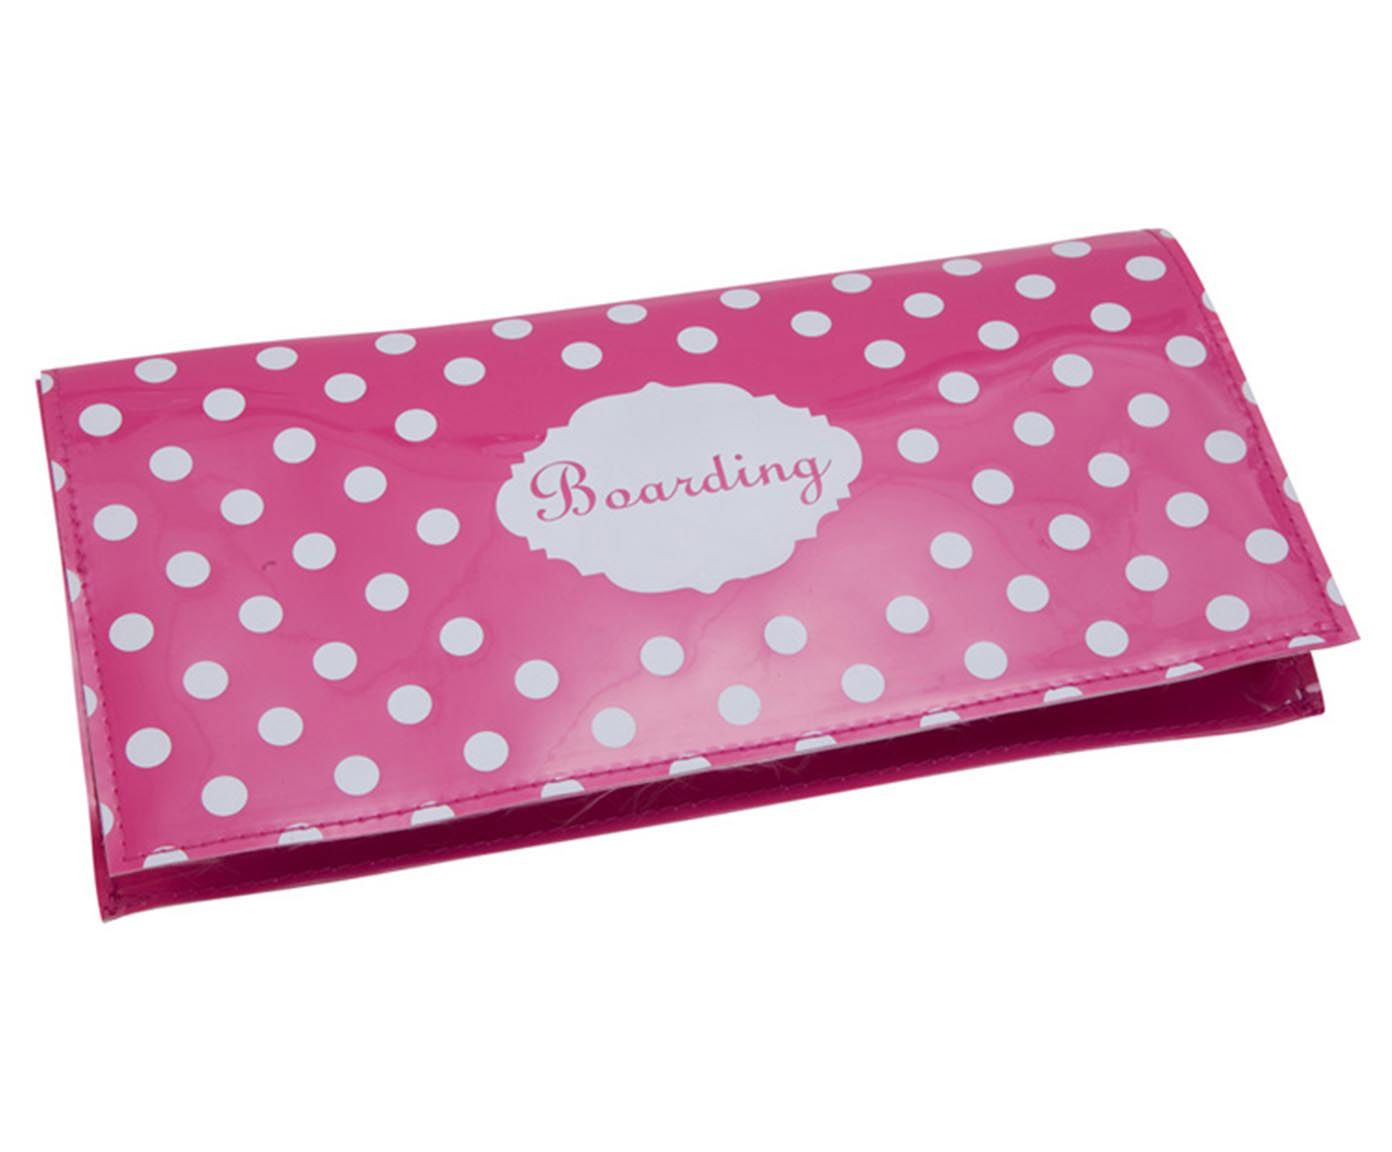 Carteira Girly Rosa - 24x13cm | Westwing.com.br